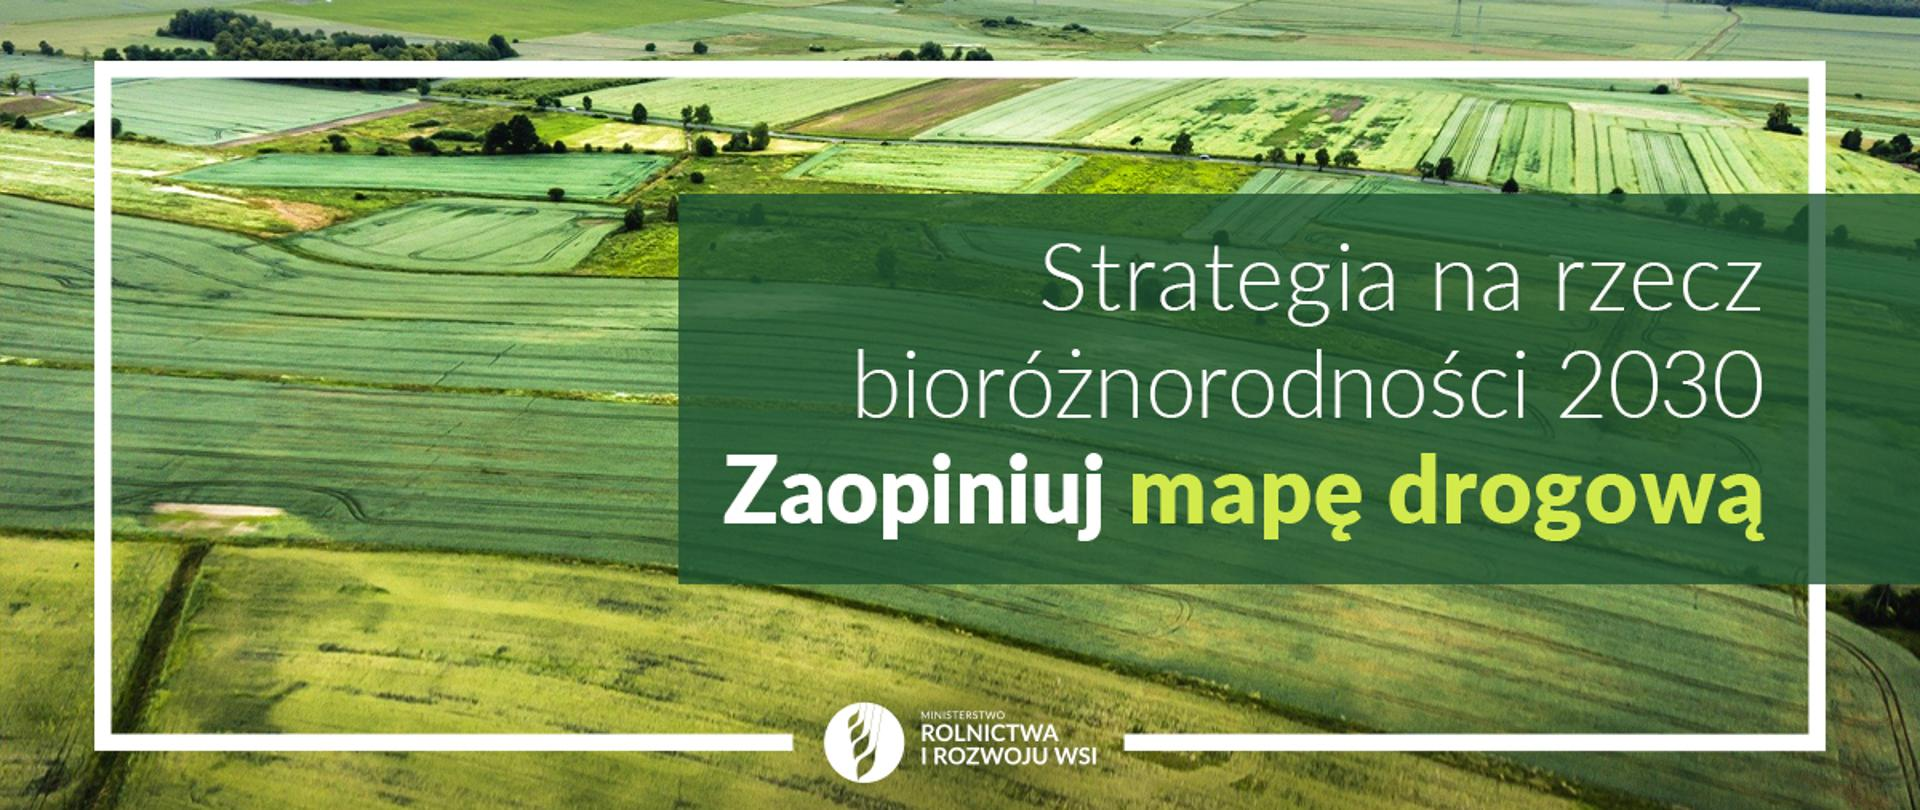 Strategia bio2030 - mapa drogowa